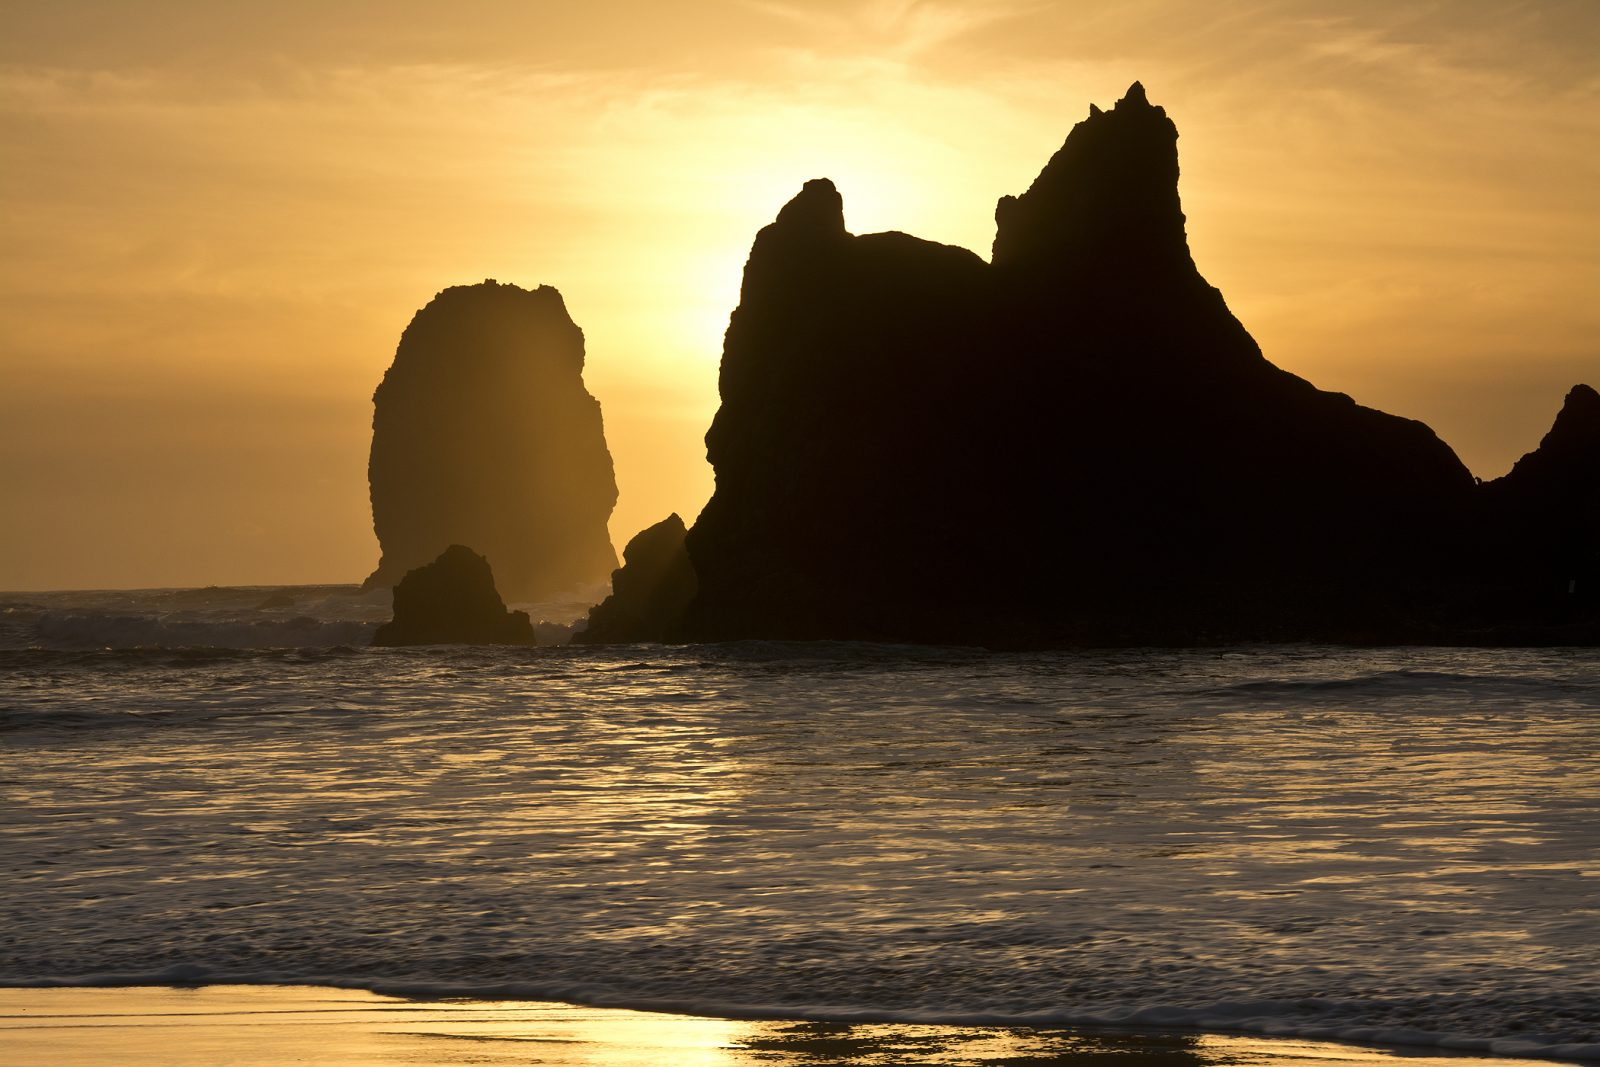 High Tide at Cannon Beach at Sunset